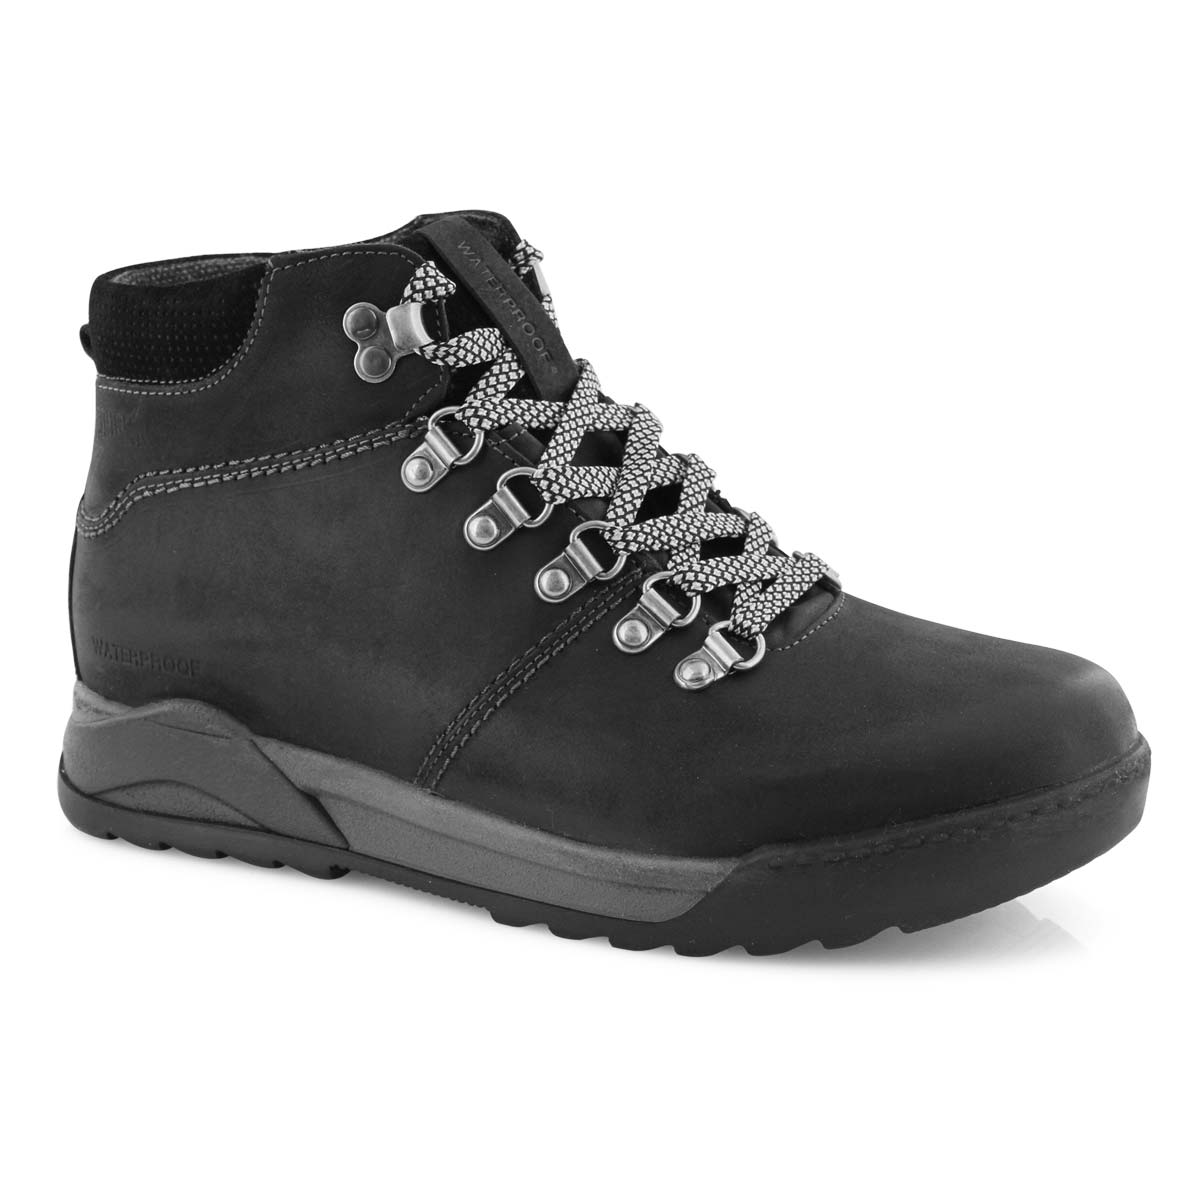 Lds Swerve blk wtpf lace up ankle boot